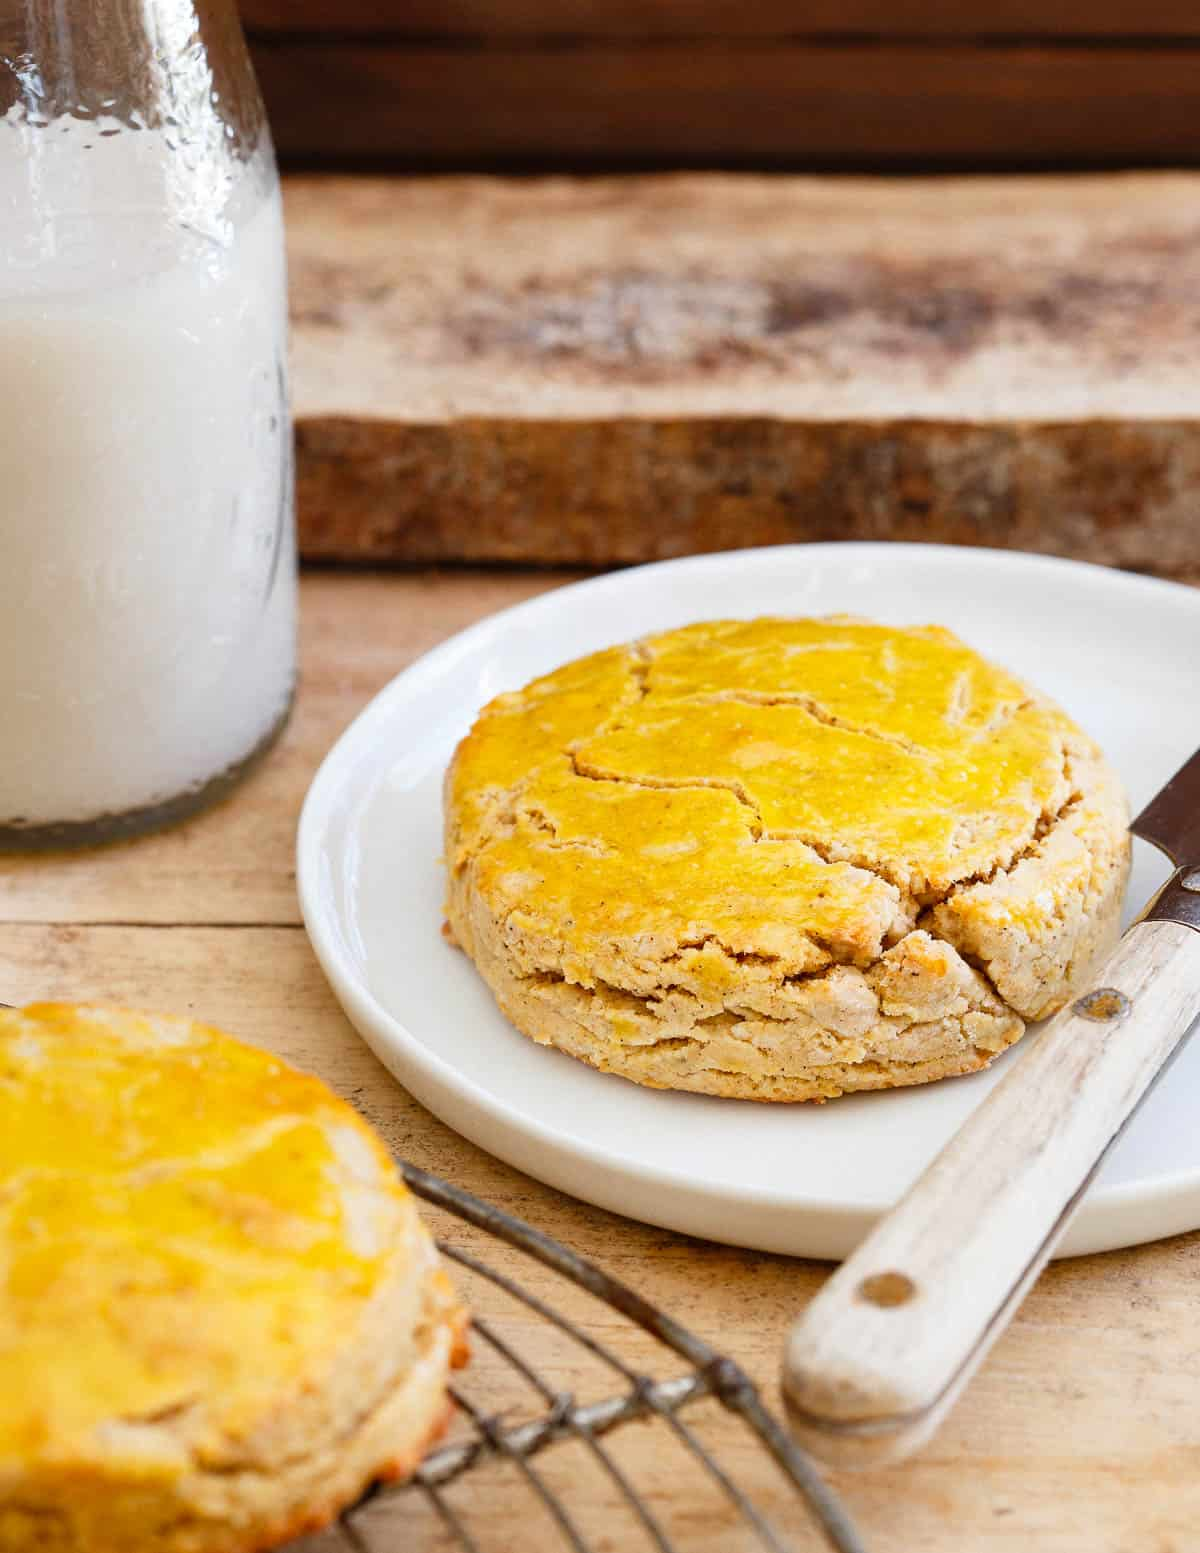 These Vanilla Butternut Squash biscuits are grain and gluten free but bake up just like a real biscuit. Soft and butter on the inside with a flaky, crunchy outside.